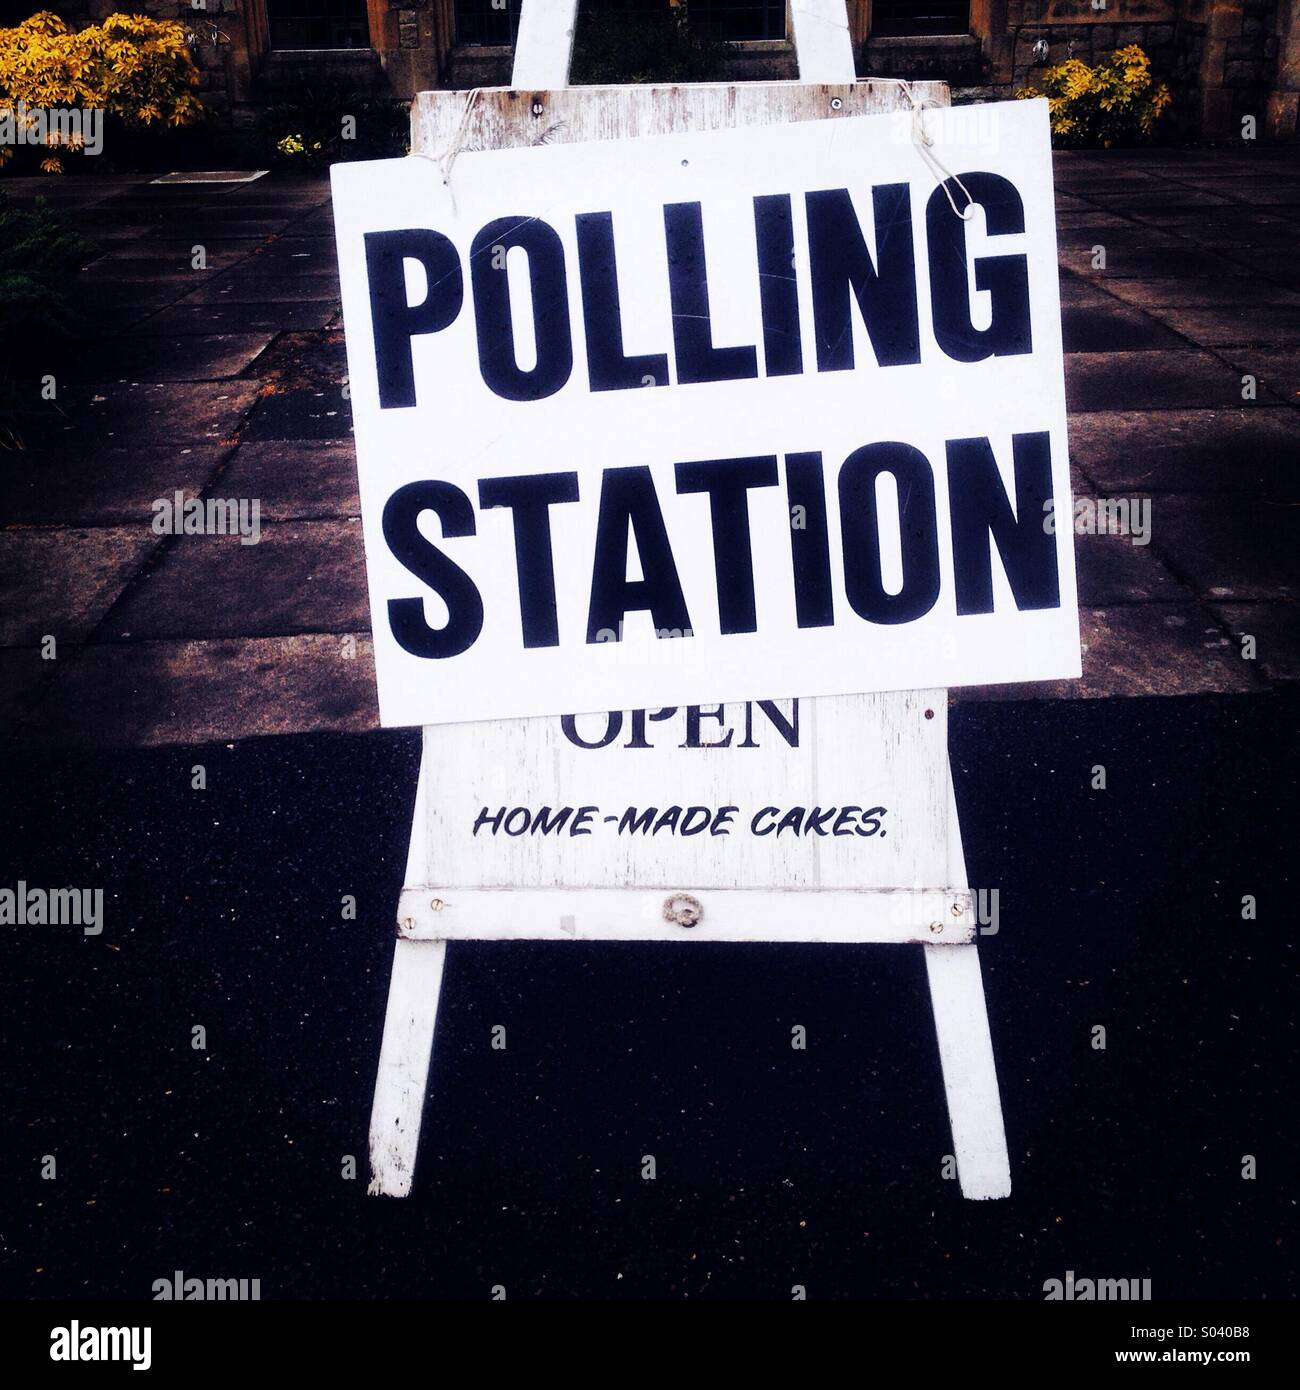 Polling station for voting in the European election and local council polls. - Stock Image